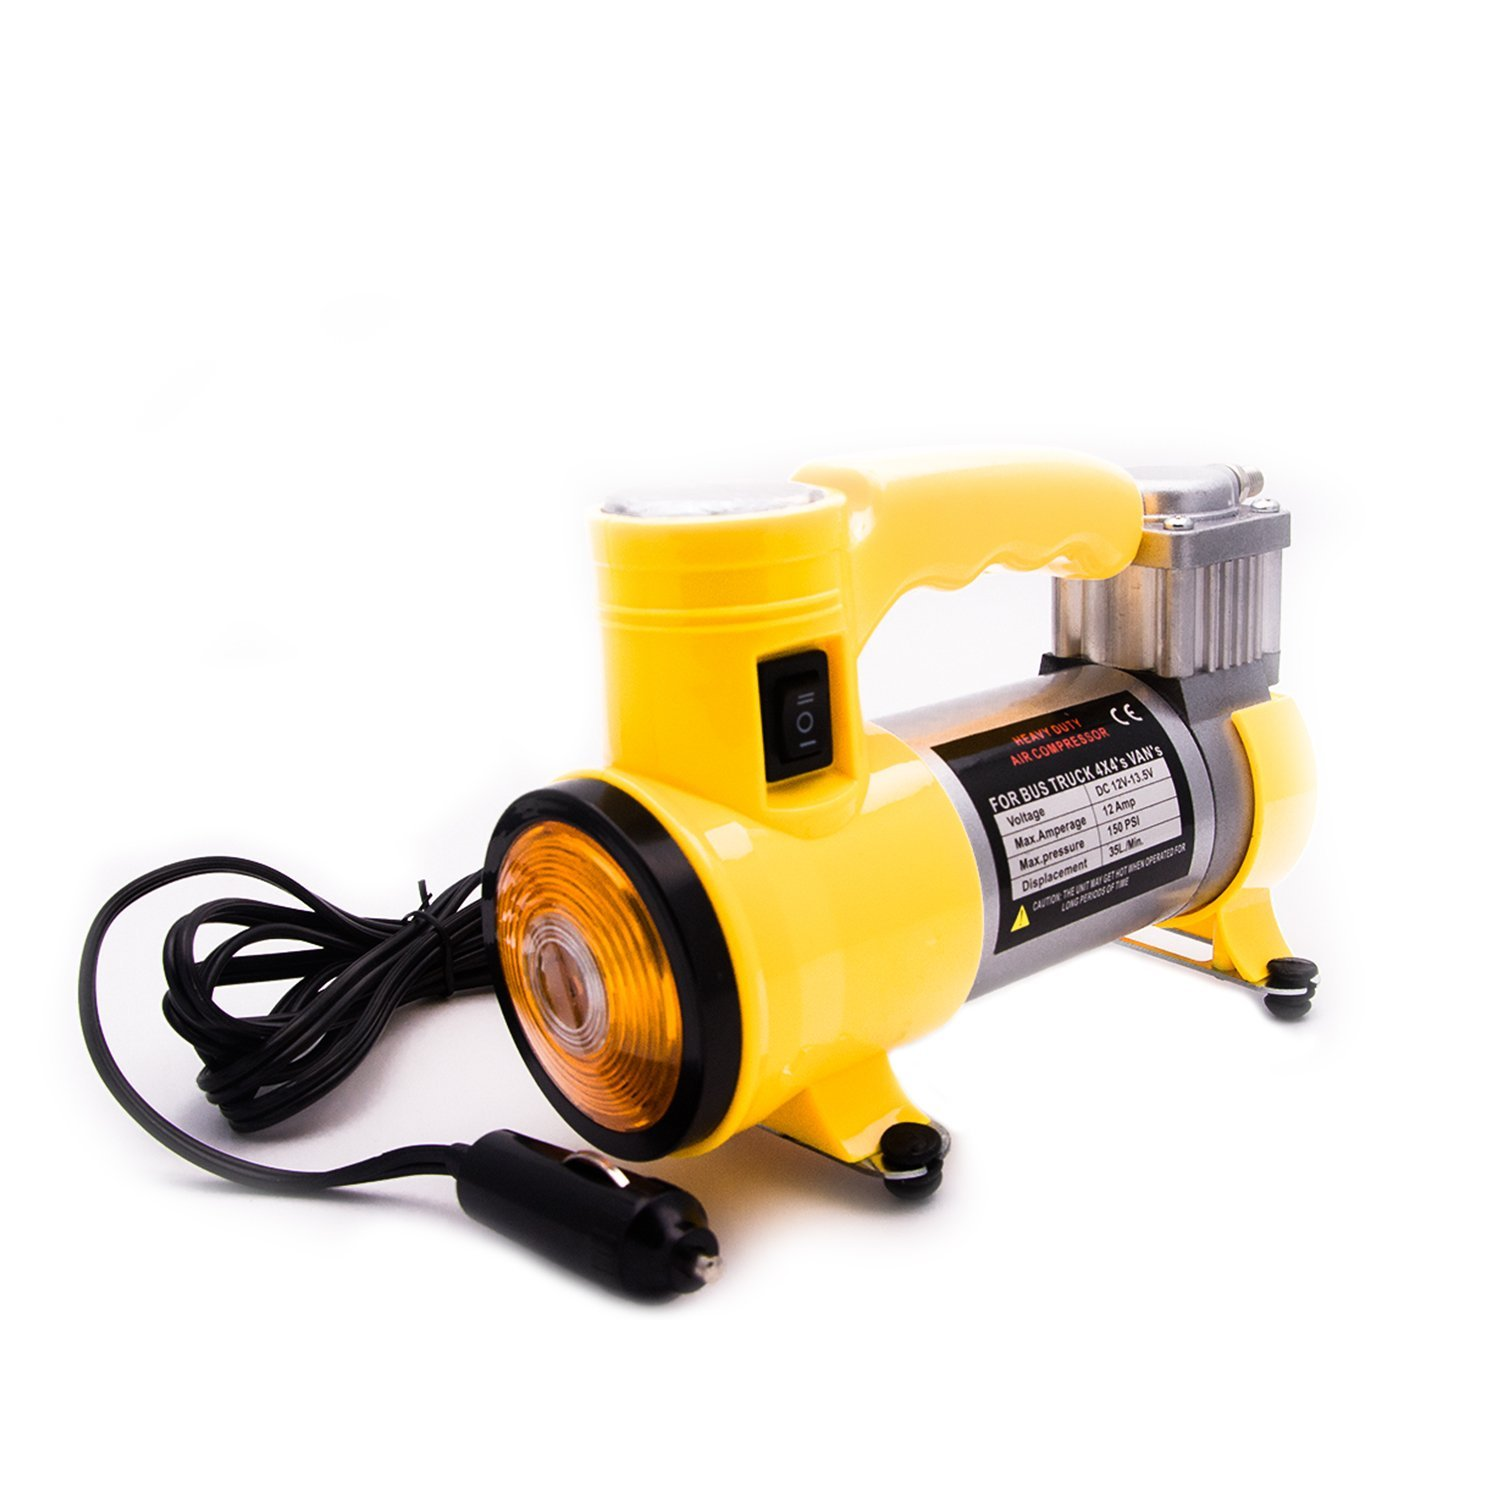 12V DC Portable Air Compressor Pump, Portable Auto Air Compressor Cigarette Lighter Chage Mini Car Air Compressor Portable Tire Inflator & Pump Tool